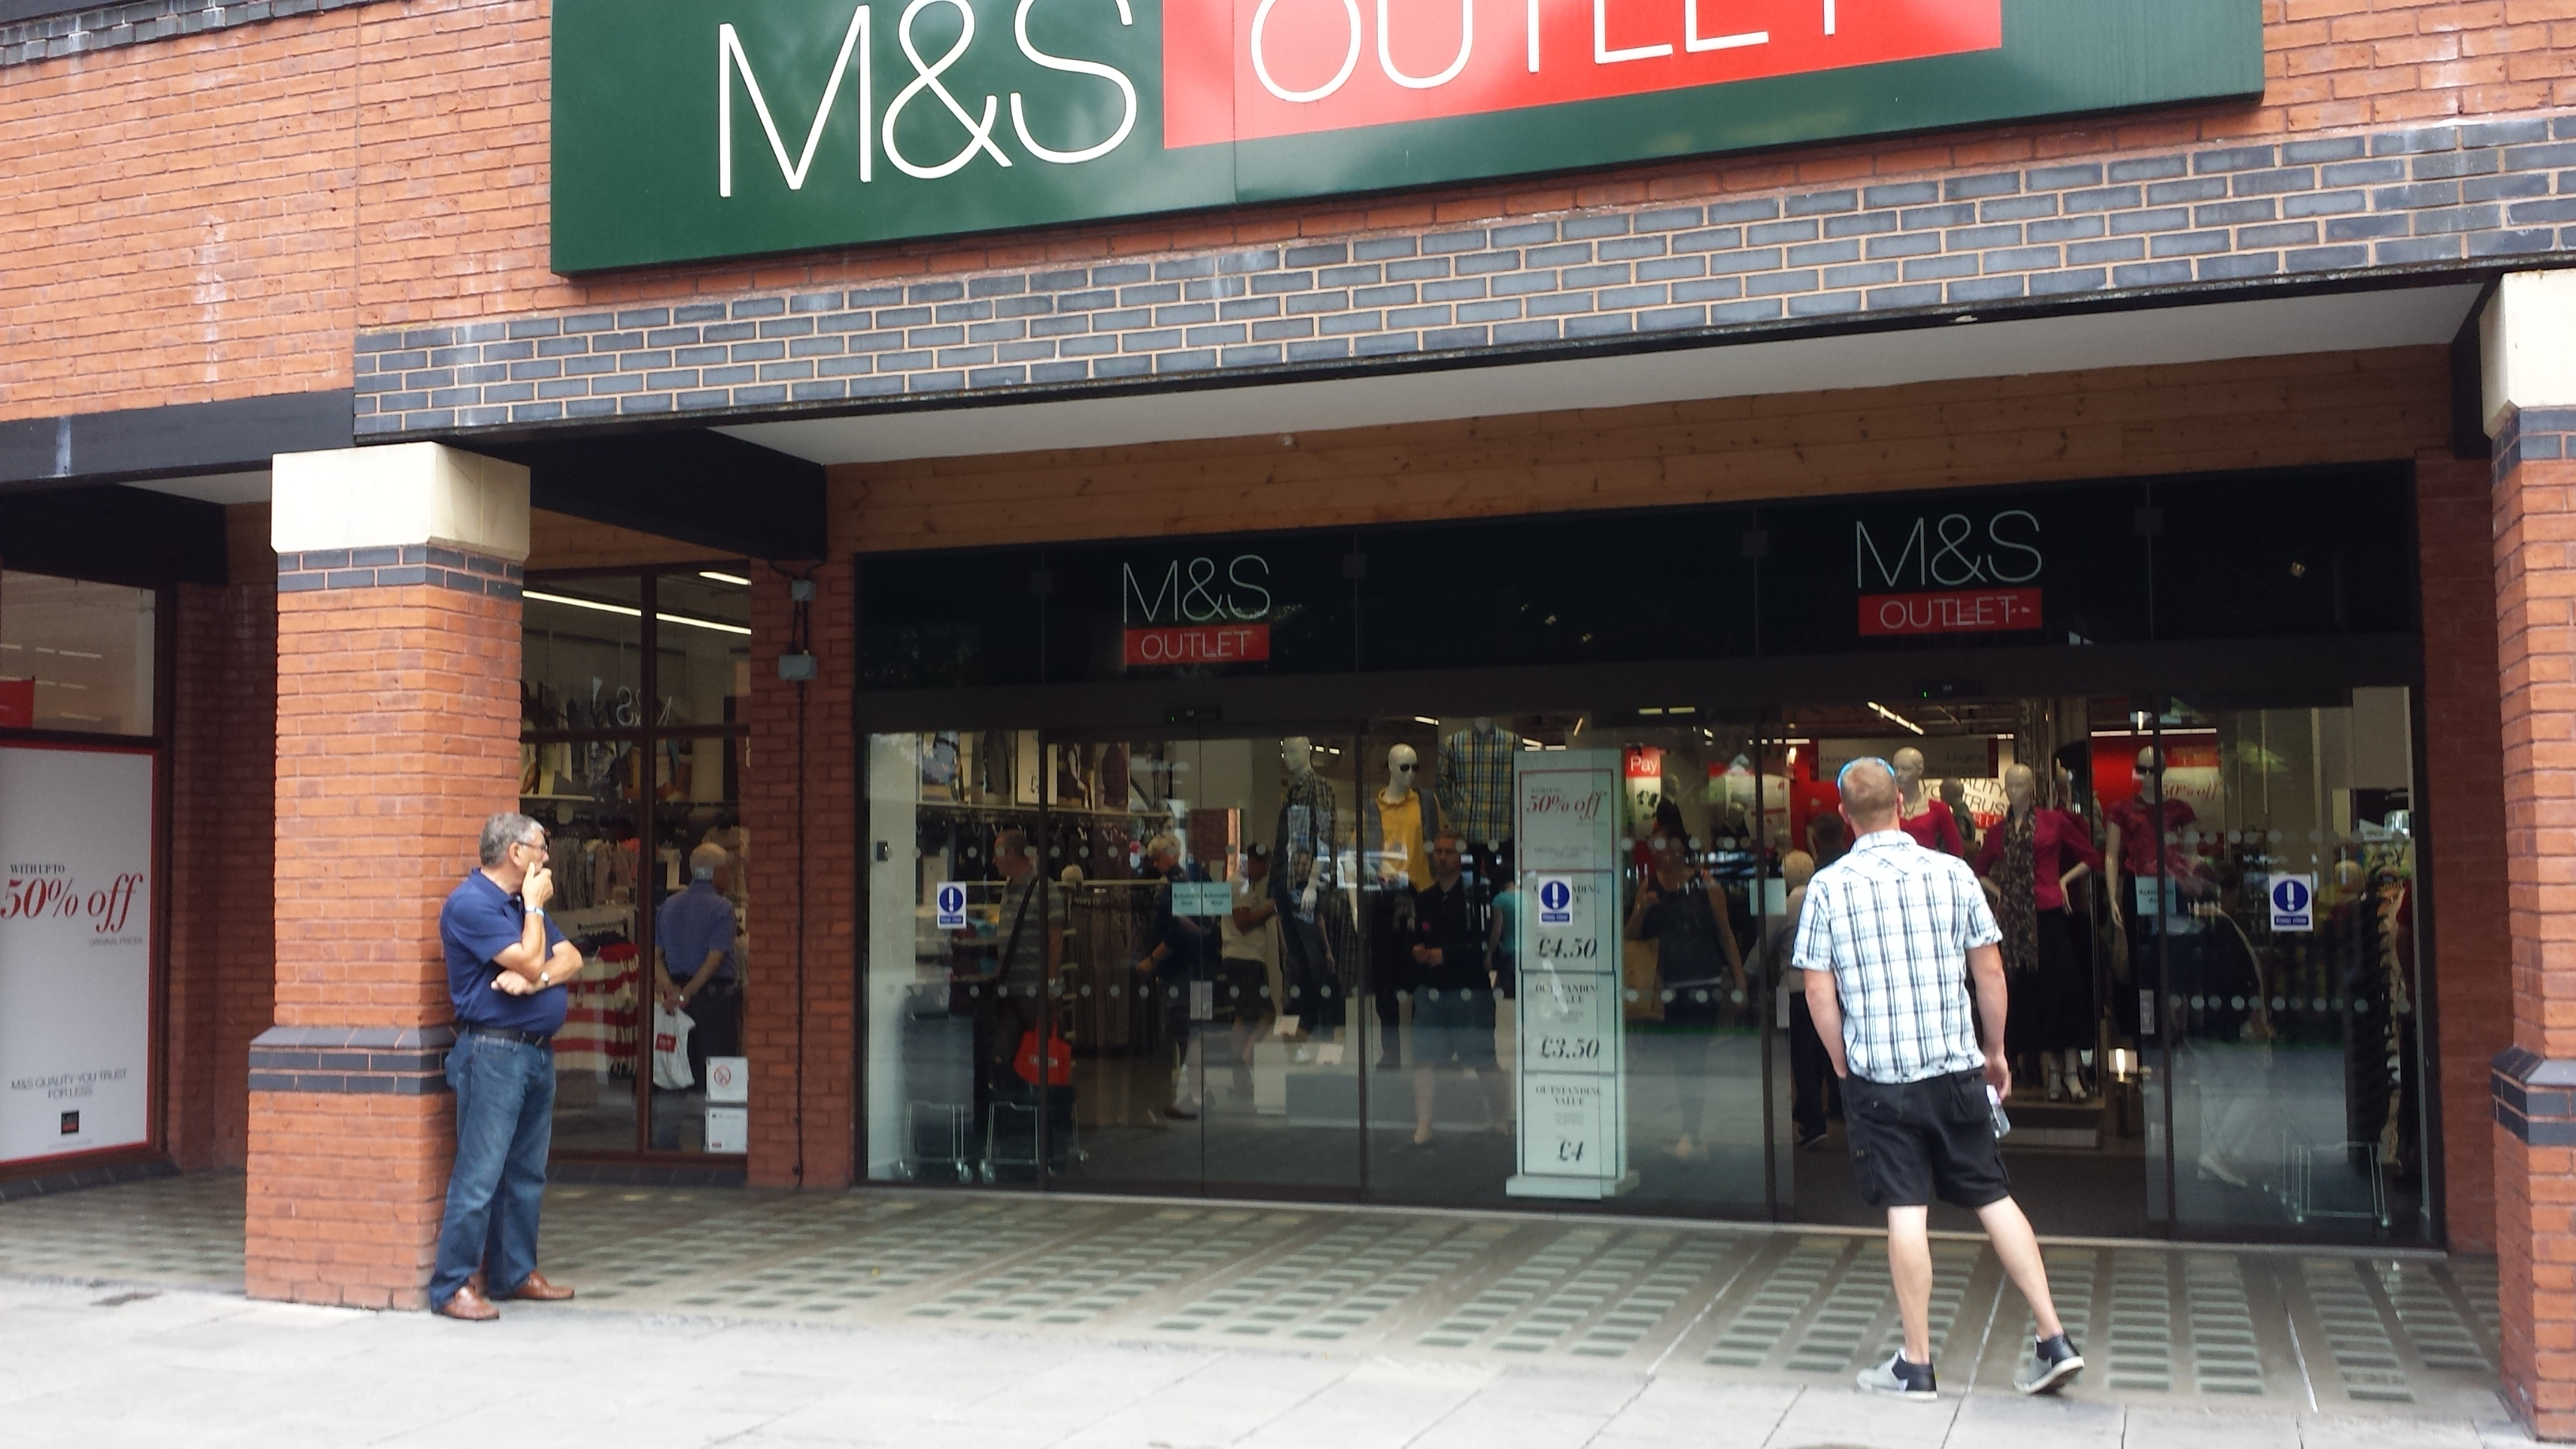 M&S Outlet Store